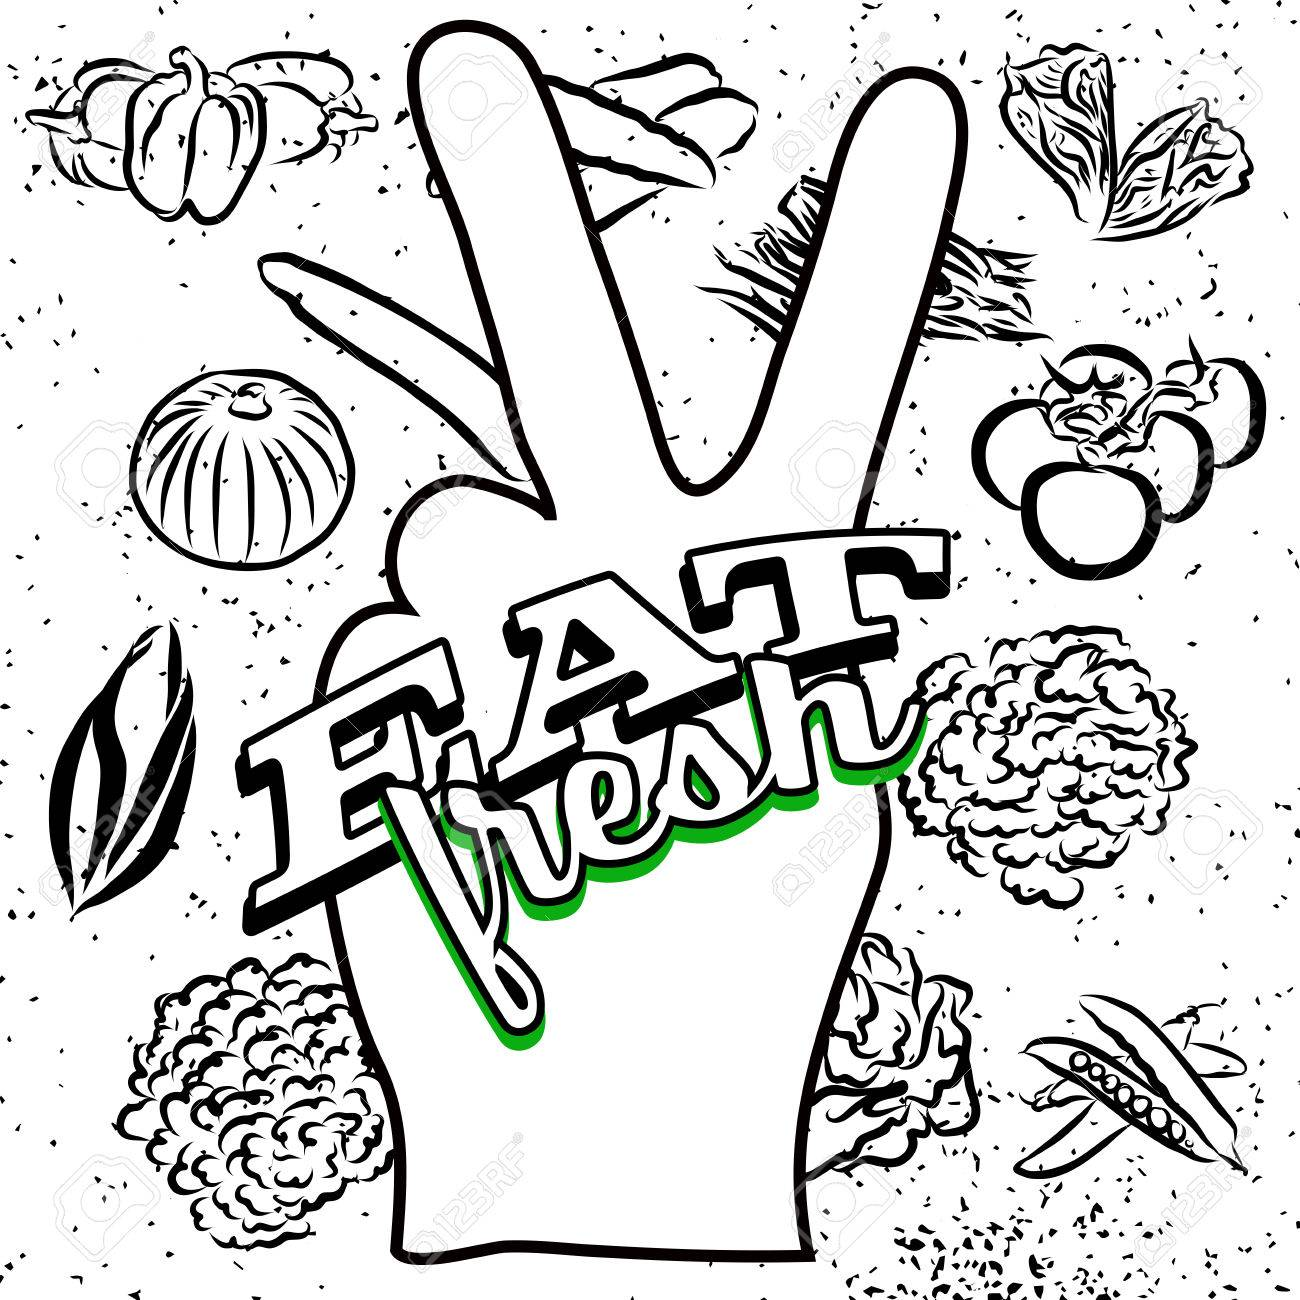 1300x1300 Eat Fresh Lettering On Peace Hand Sign, Hand Drawn Outline Artwork